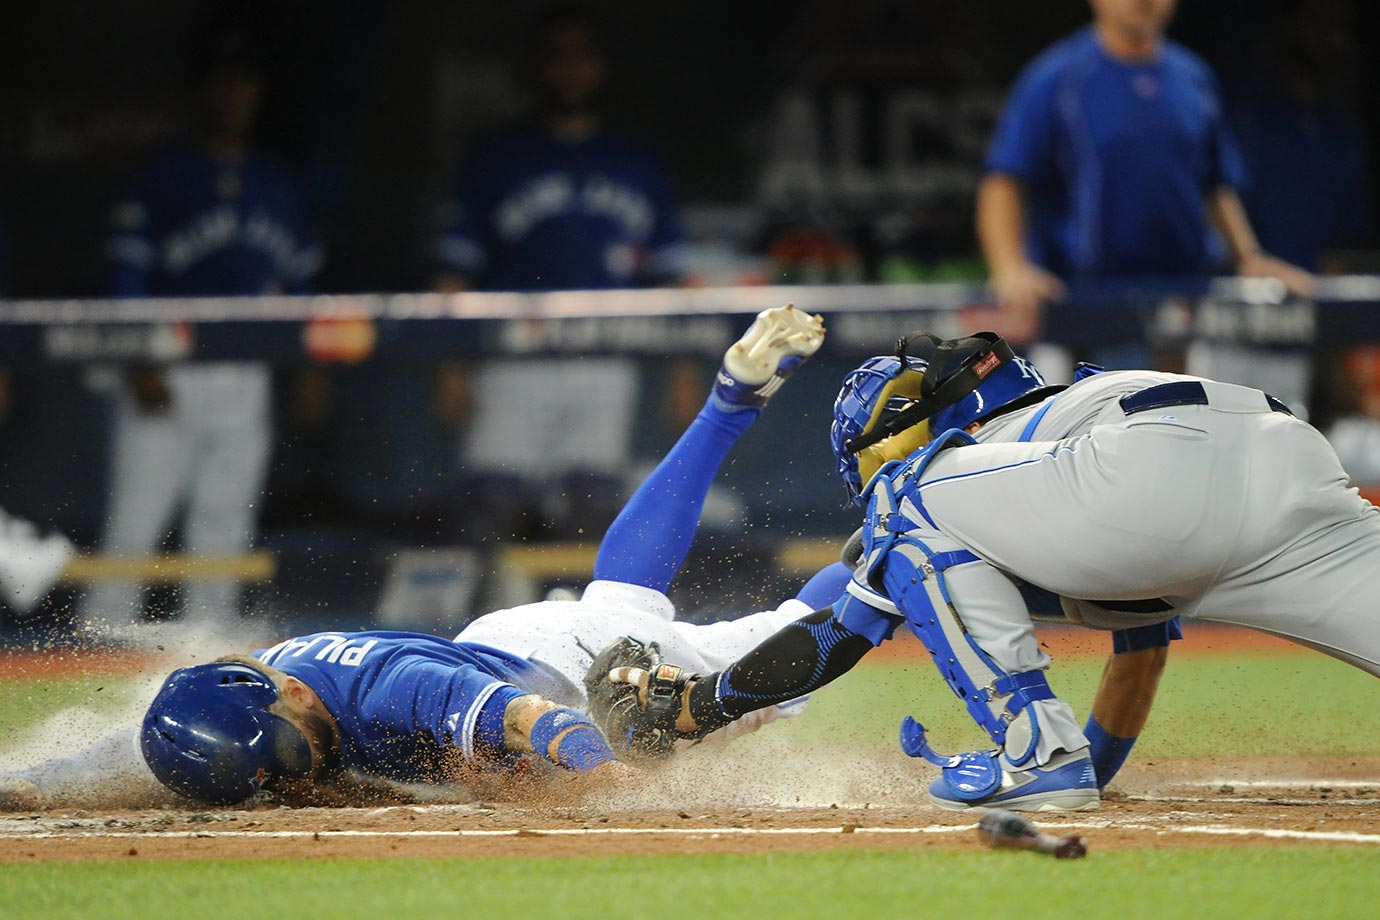 Kevin Pillar of theToronto Blue Jays beats a tag by Salvador Perez of the Kansas City Royals.